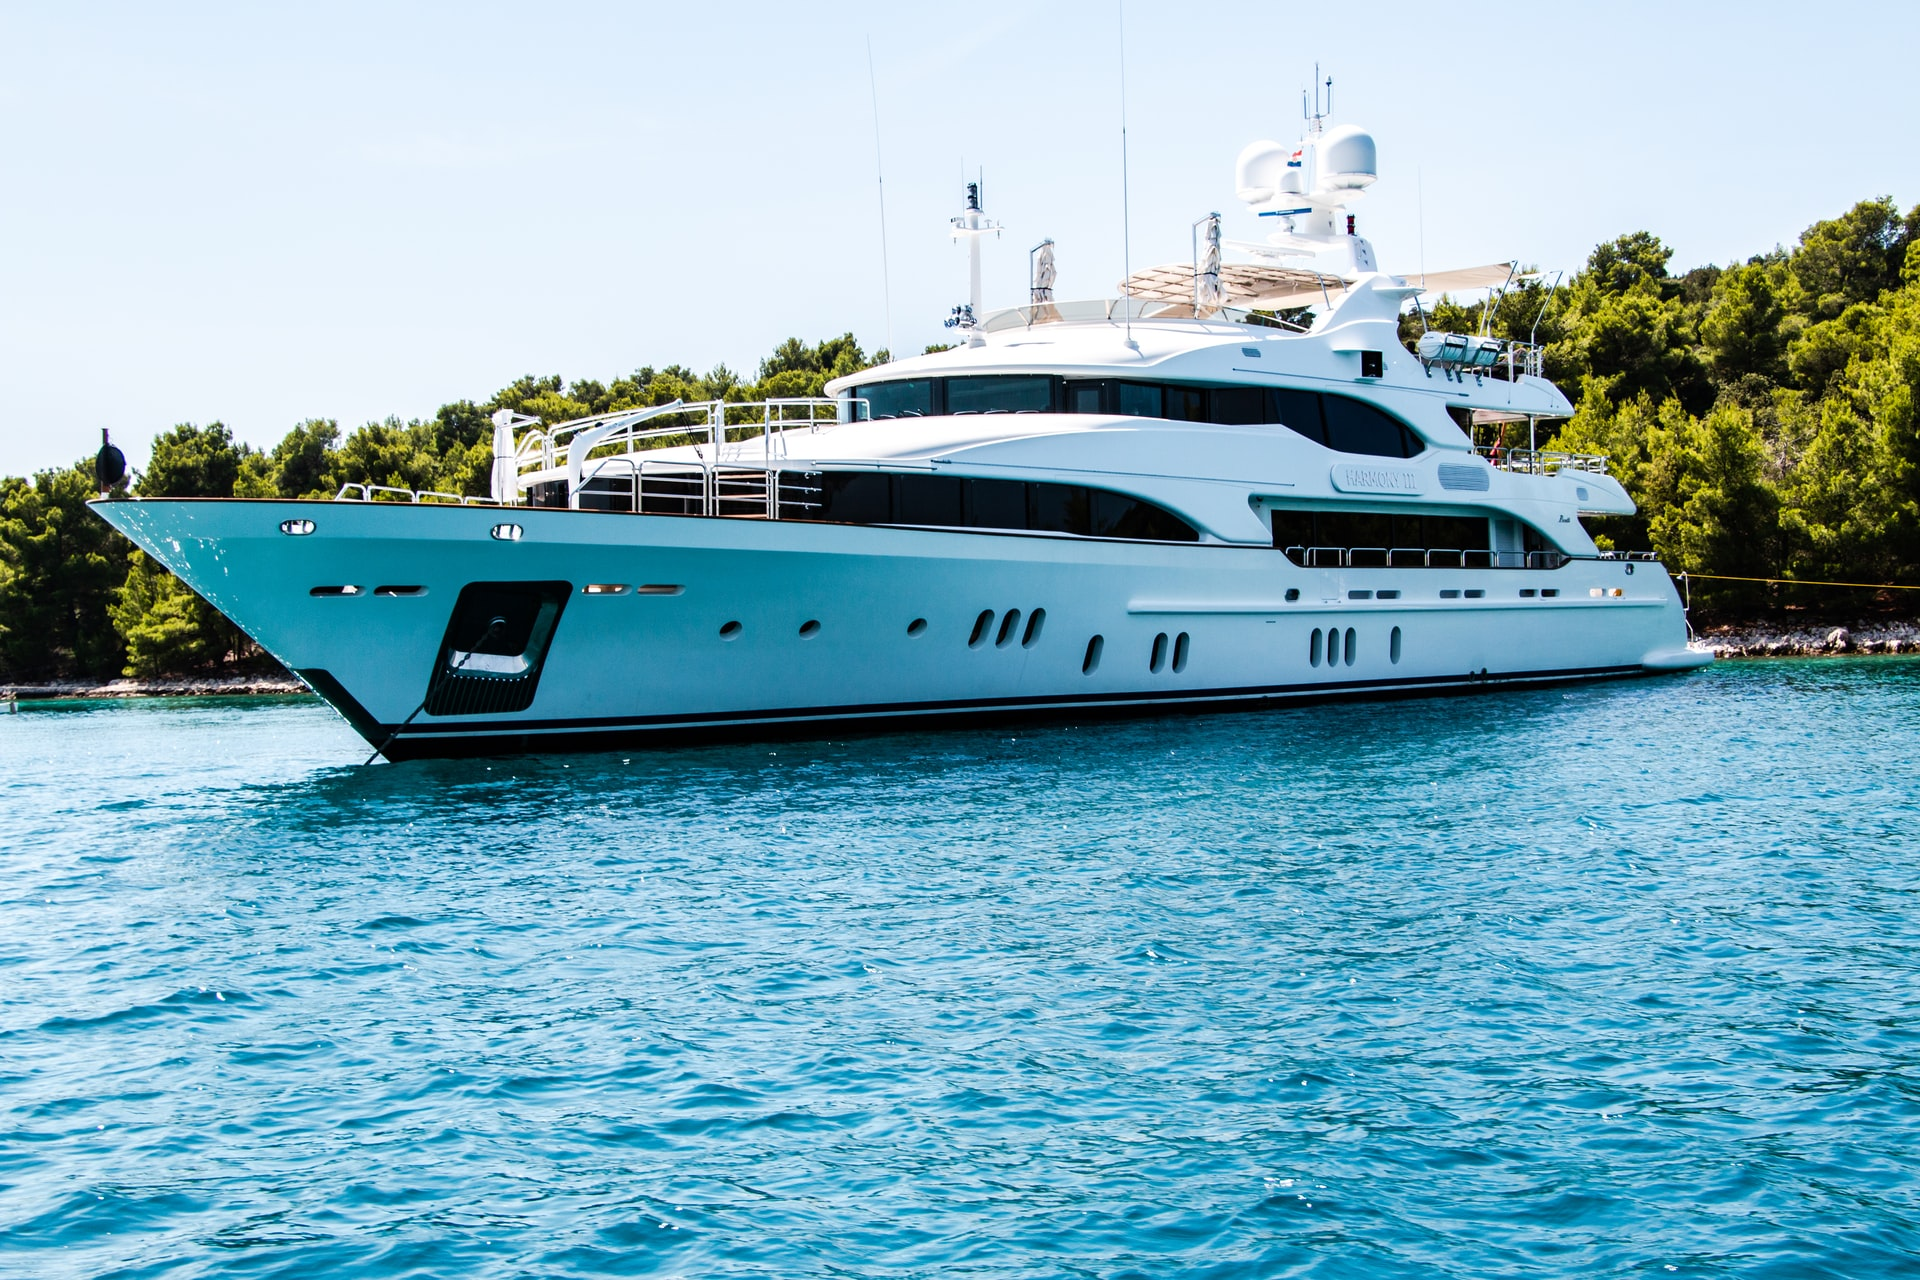 Chartering A Yacht For Your Next Vacation? Things You Need To Consider